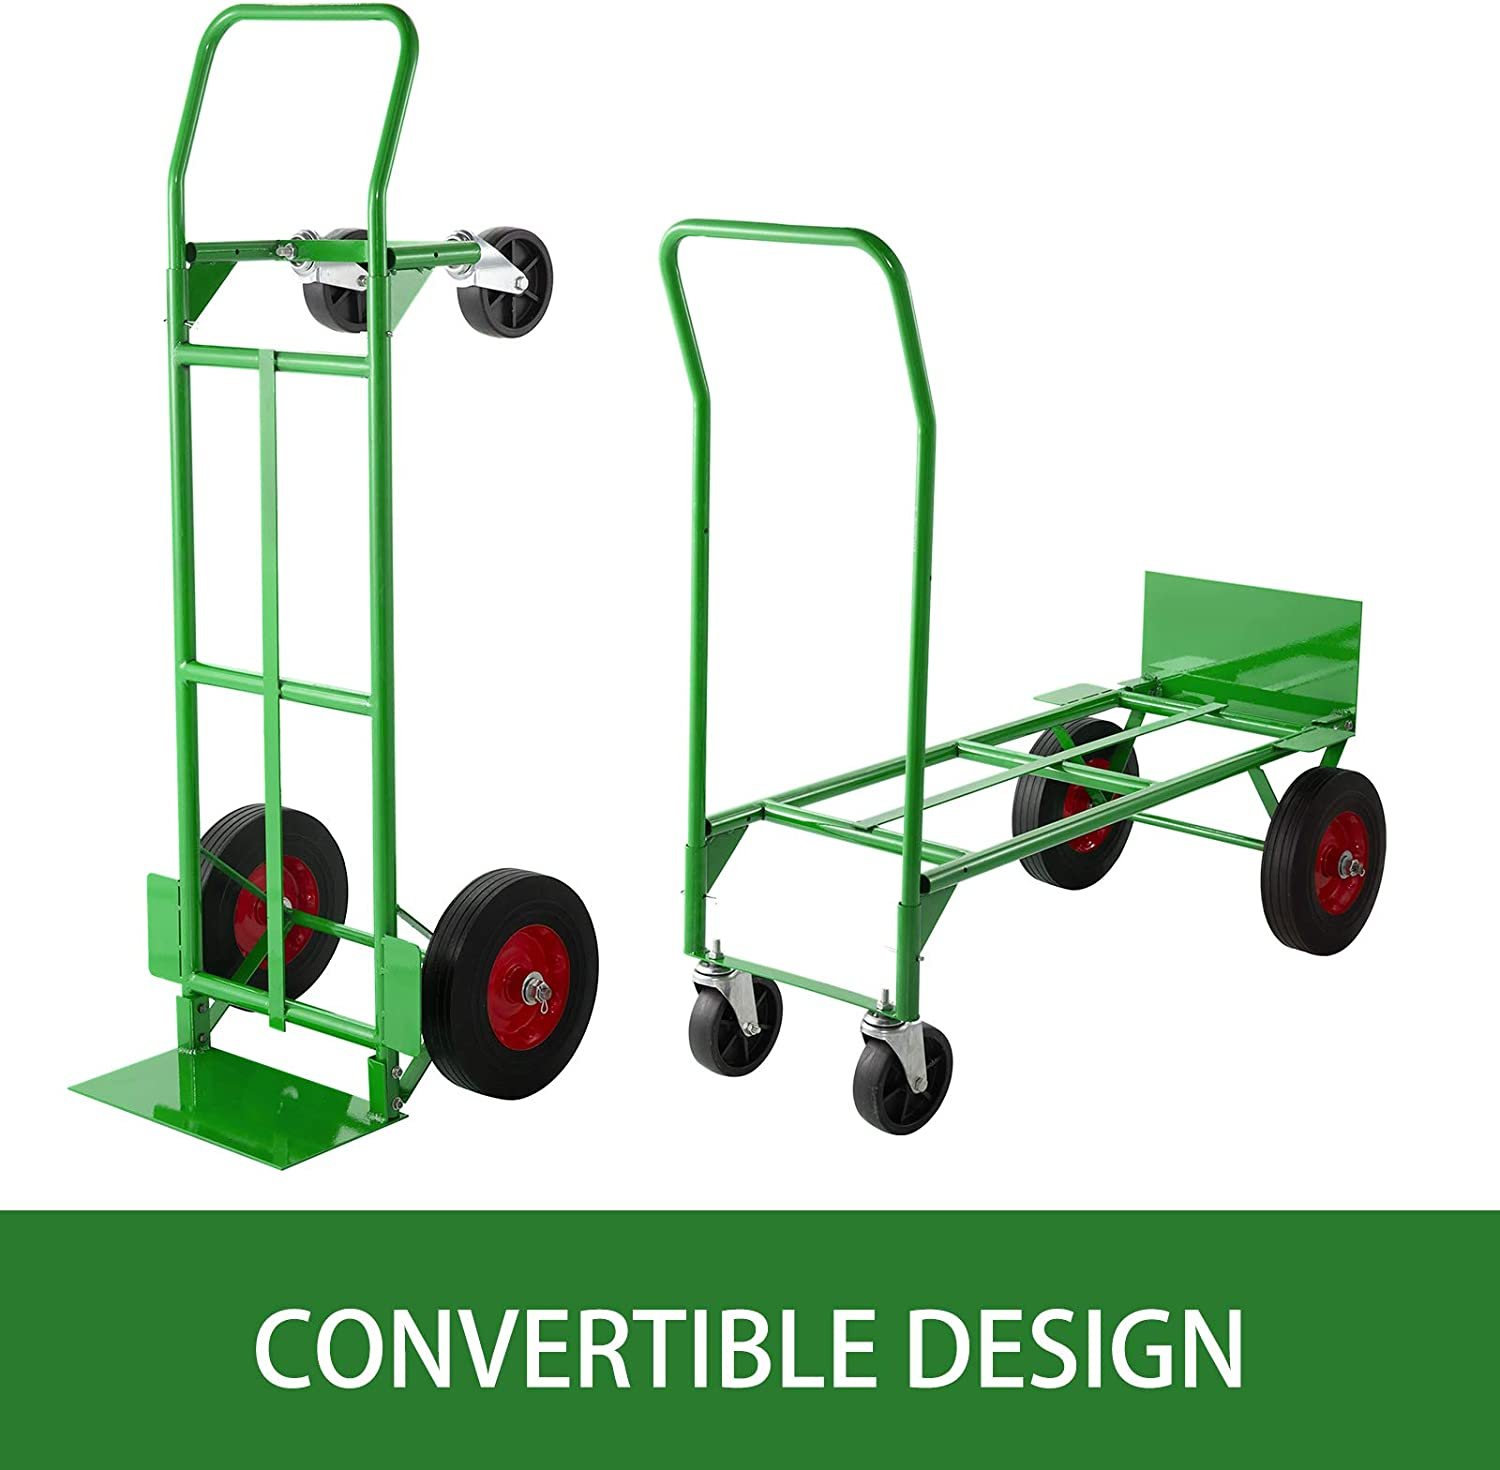 BestEquip Convertible Hand Truck 200lb//300lb Capacity Convertible Dolly with 10 Inch Solid Caster and 5 Inch Swivel Casters Dolly Cart 2 Wheels Dolly and 4 Wheels Cart for Handling Equipment in Green